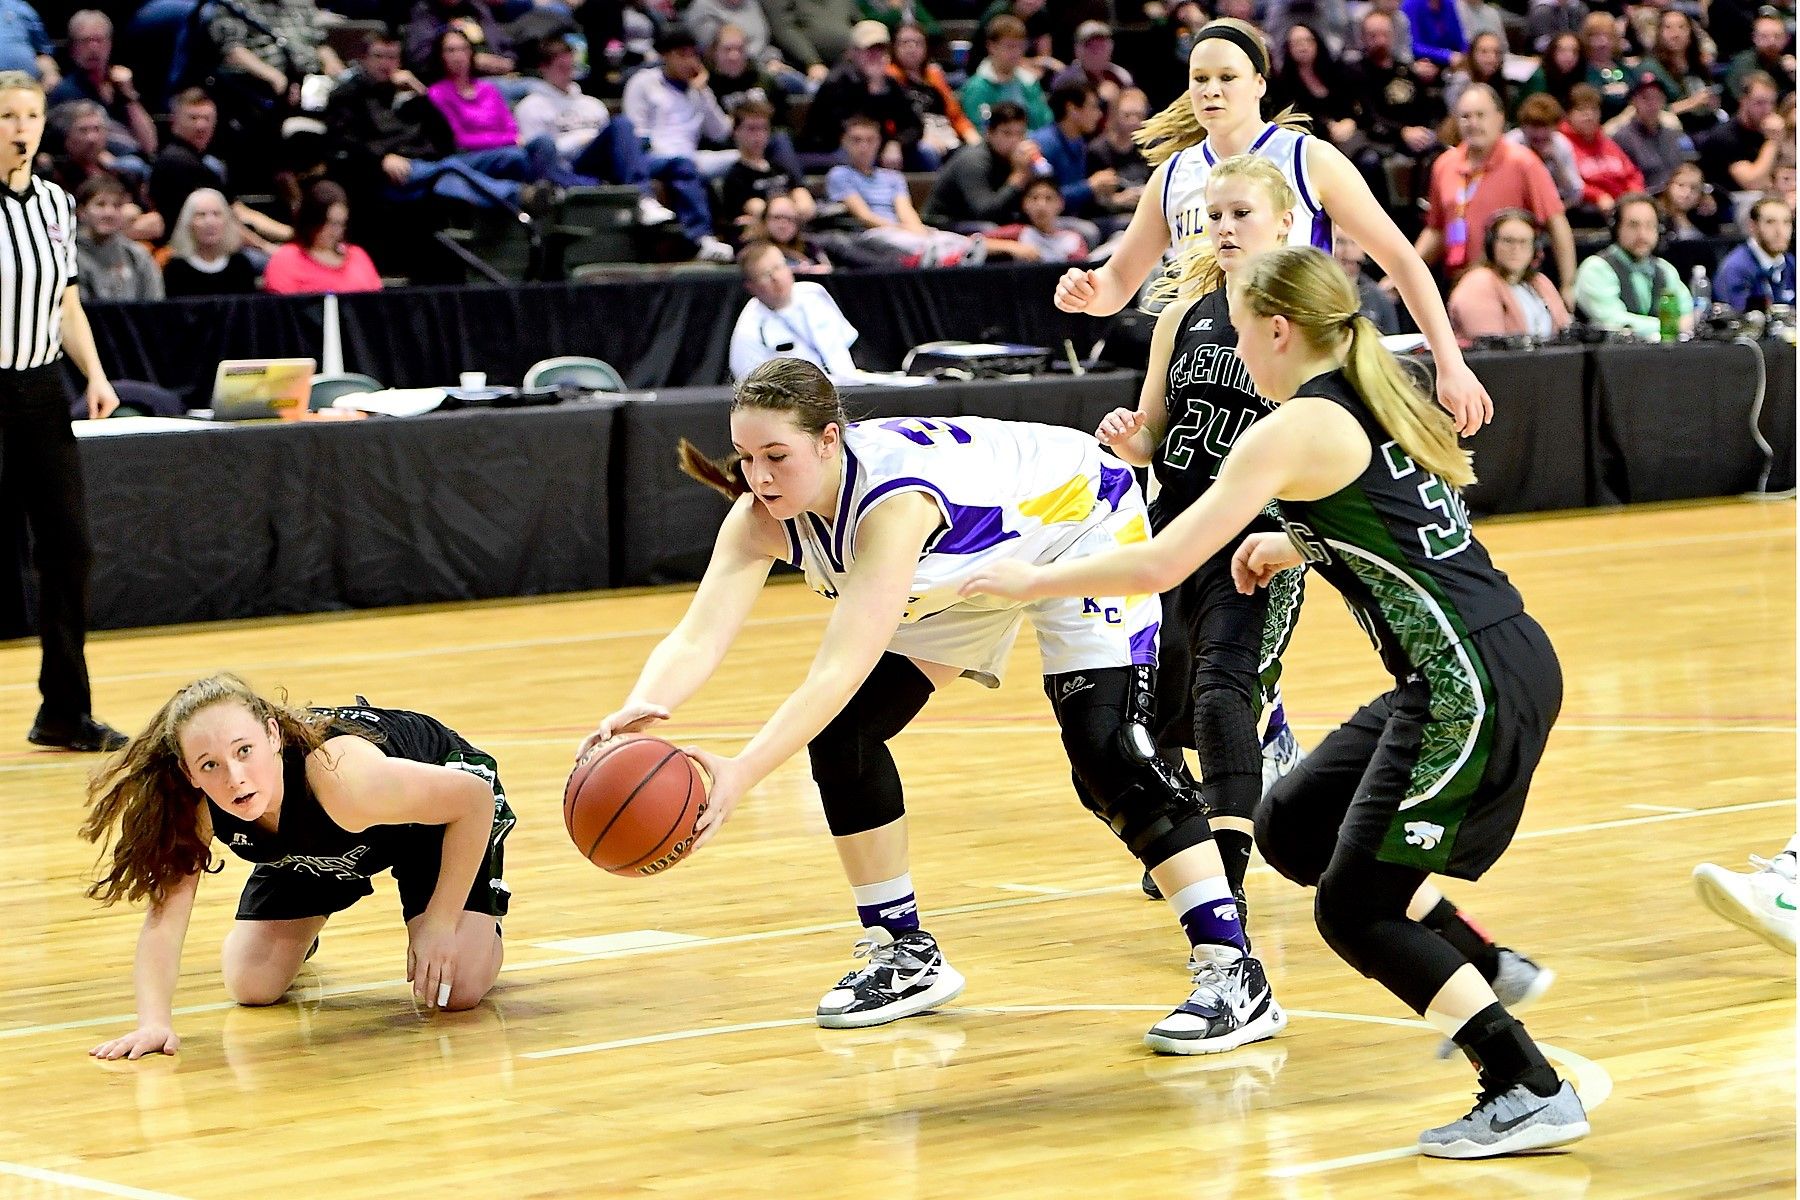 Olivia Isenbart with the Kit Carson Lady Wildcats at the State Championship Game versus Fleming Photo Credit Bob Schecter